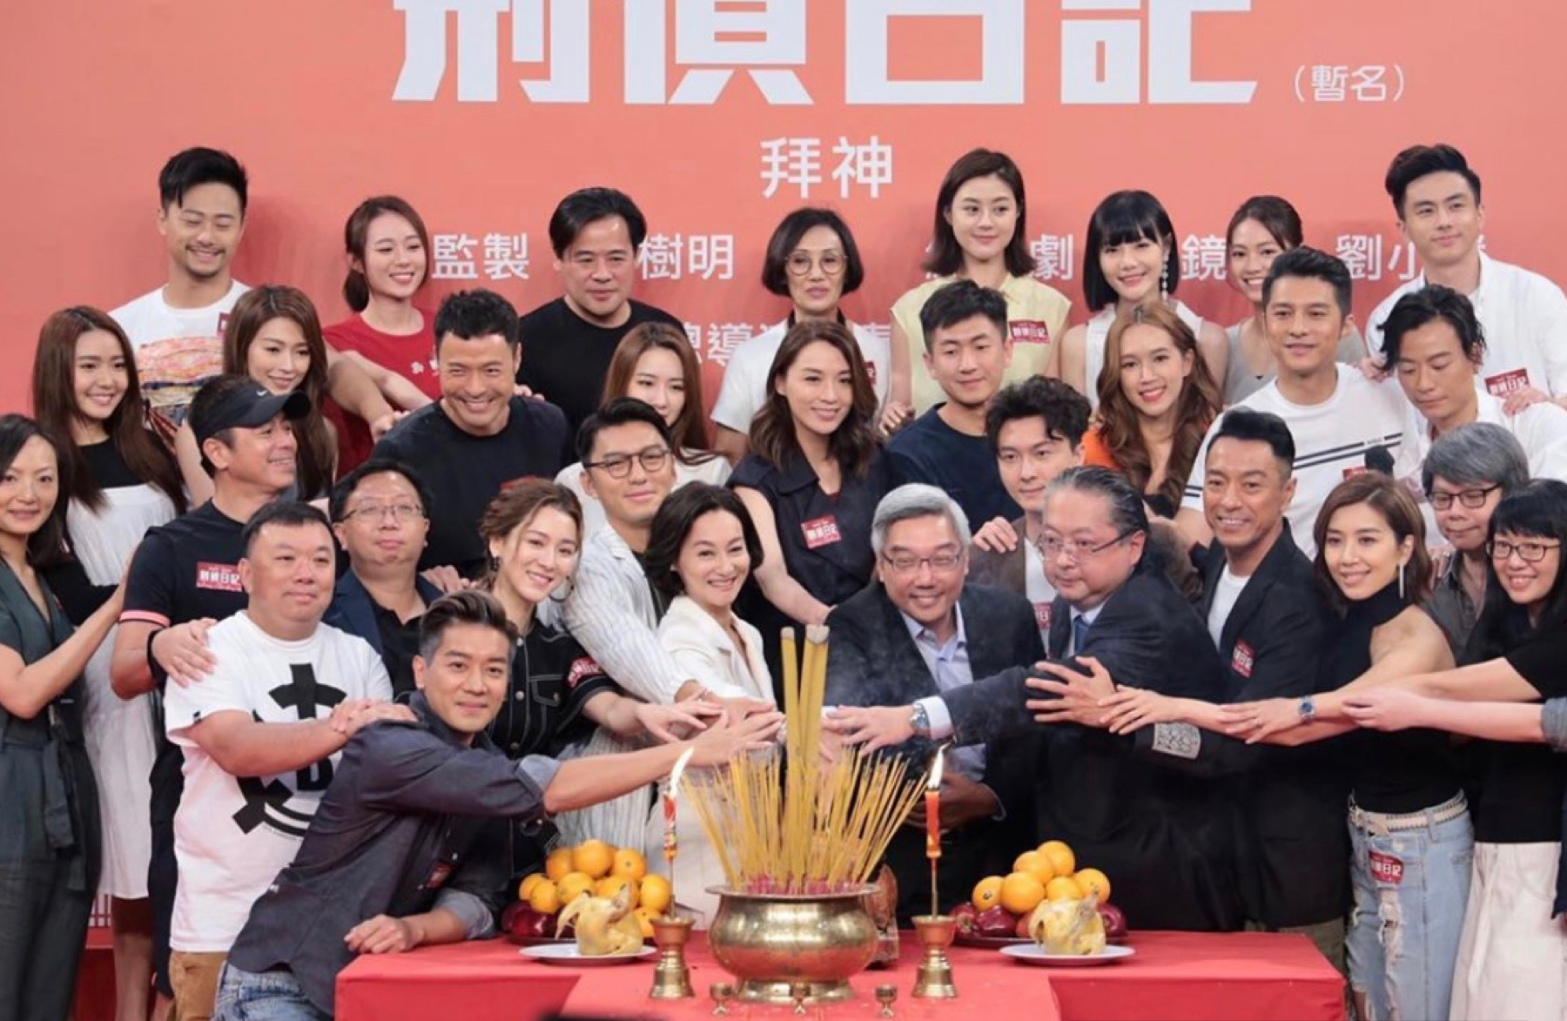 Detective Investigation Diaries cast blessing ceremony